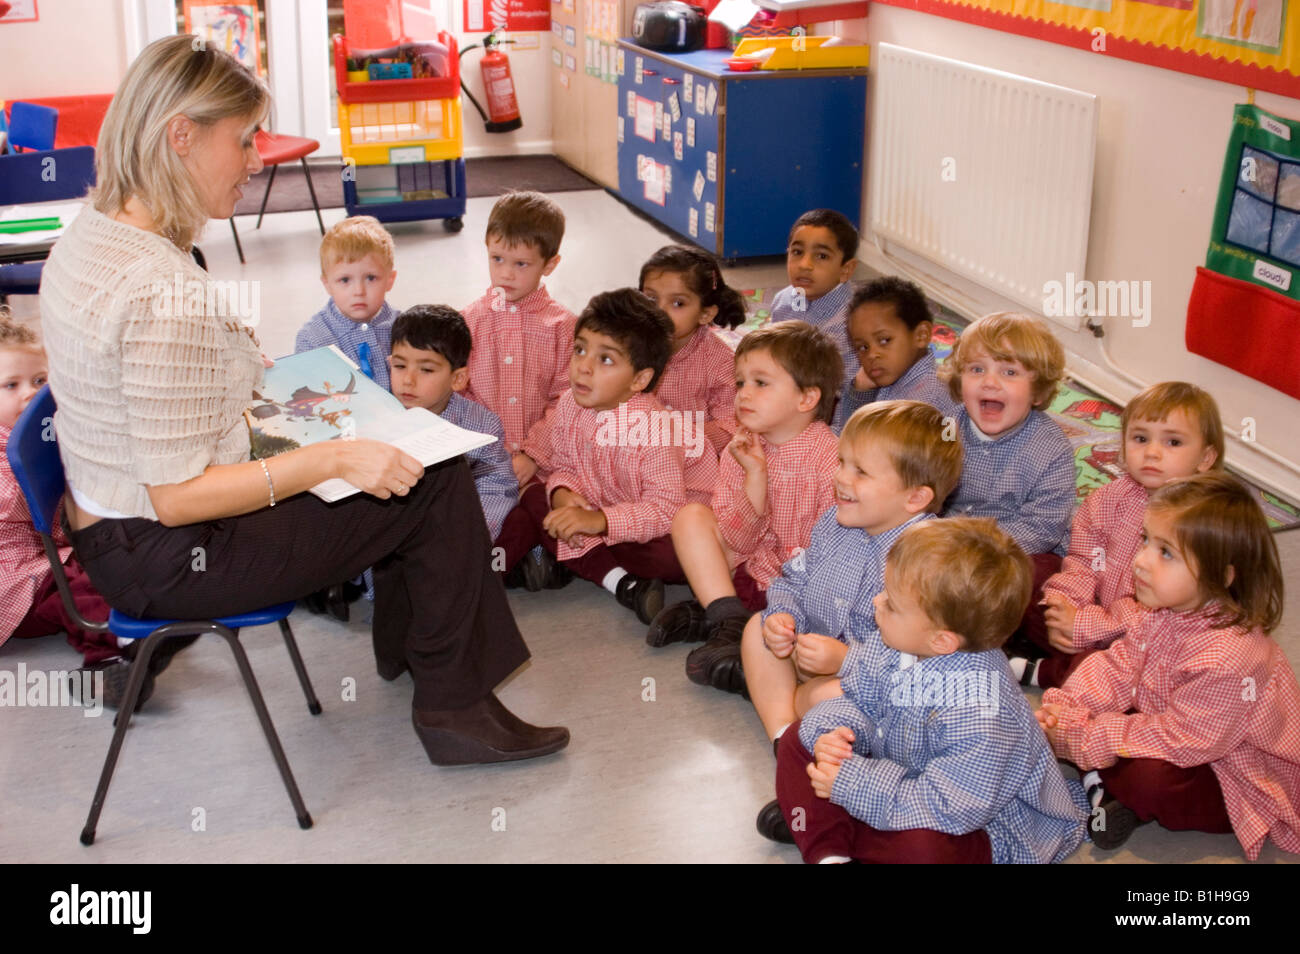 Teacher Reading To Nursery School Children Stock Photo. Samples Graduation Messages. Resident Director Cover Letter. Sample Of Customer Service Cover Letter Template. Sample Of Invoice Bill Template. Sample Of Early Childhood Education Application Letter. What Skills Should A Customer Service Template. What Do You Write On A Cover Letters Template. Resume Objective Restaurant